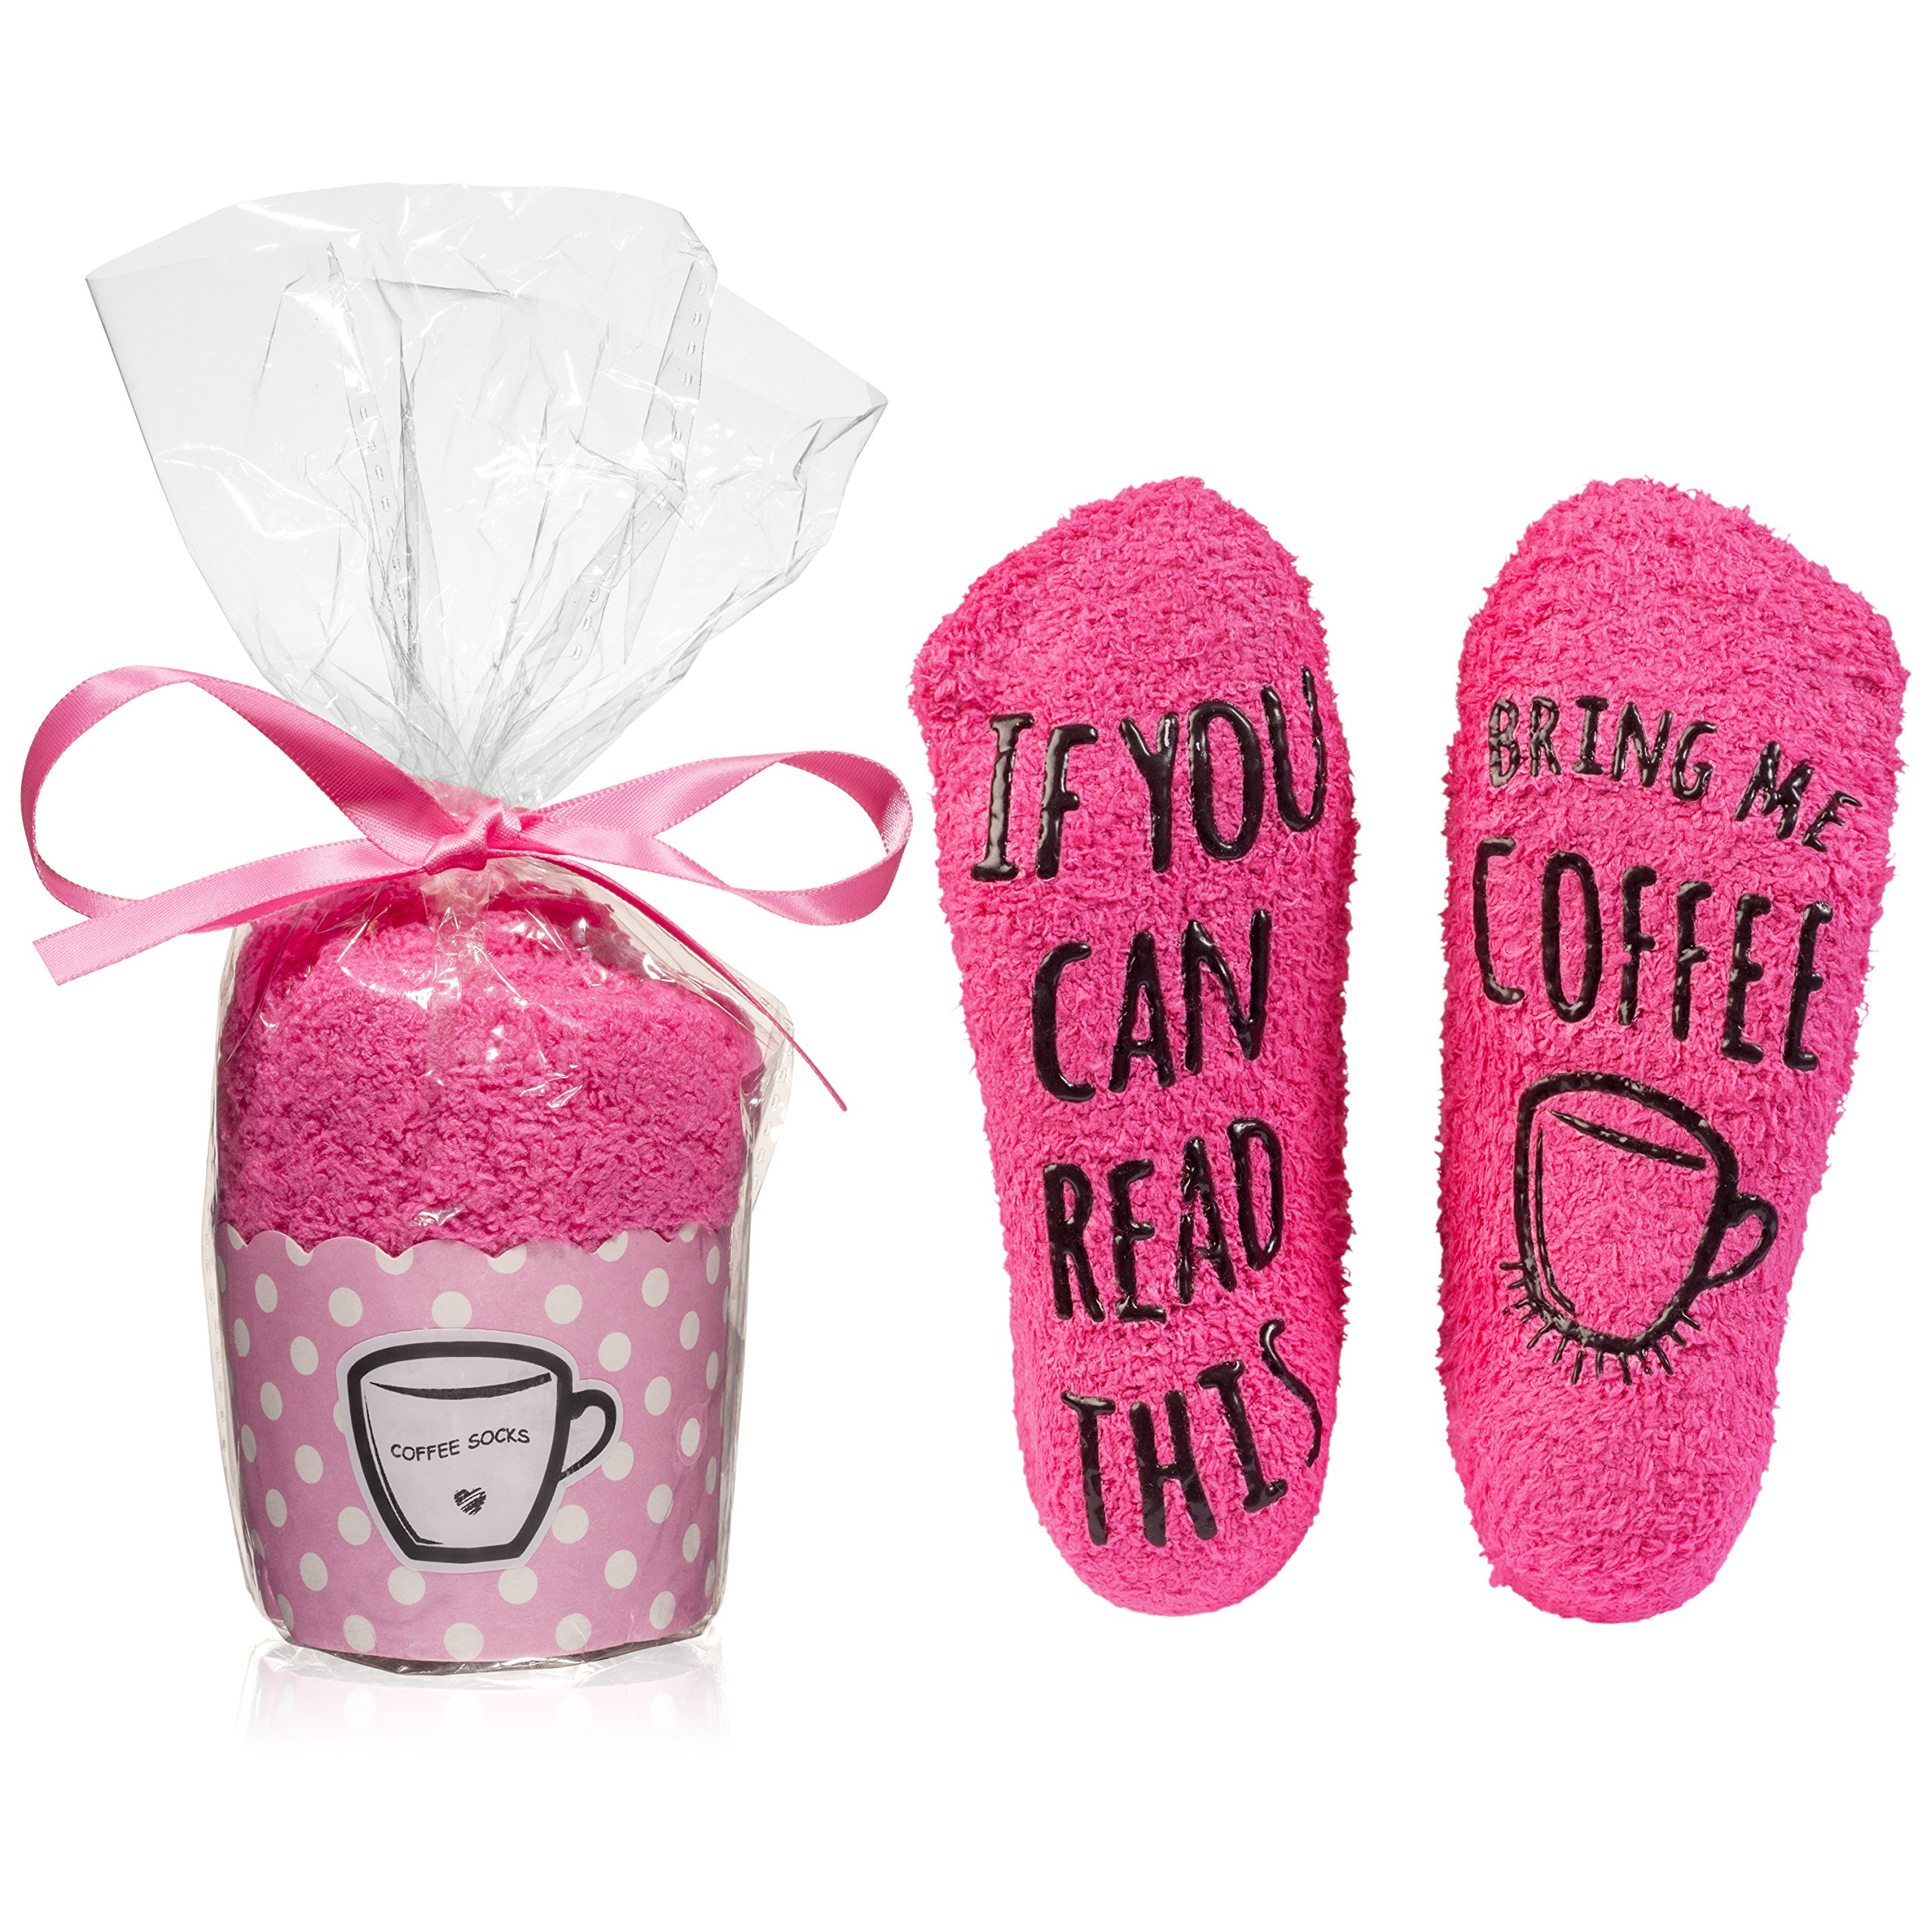 "Luxurious Cotton ""Bring Me Coffee"" Socks In Cupcake Packaging - The Perfect Present For Any Occasion"